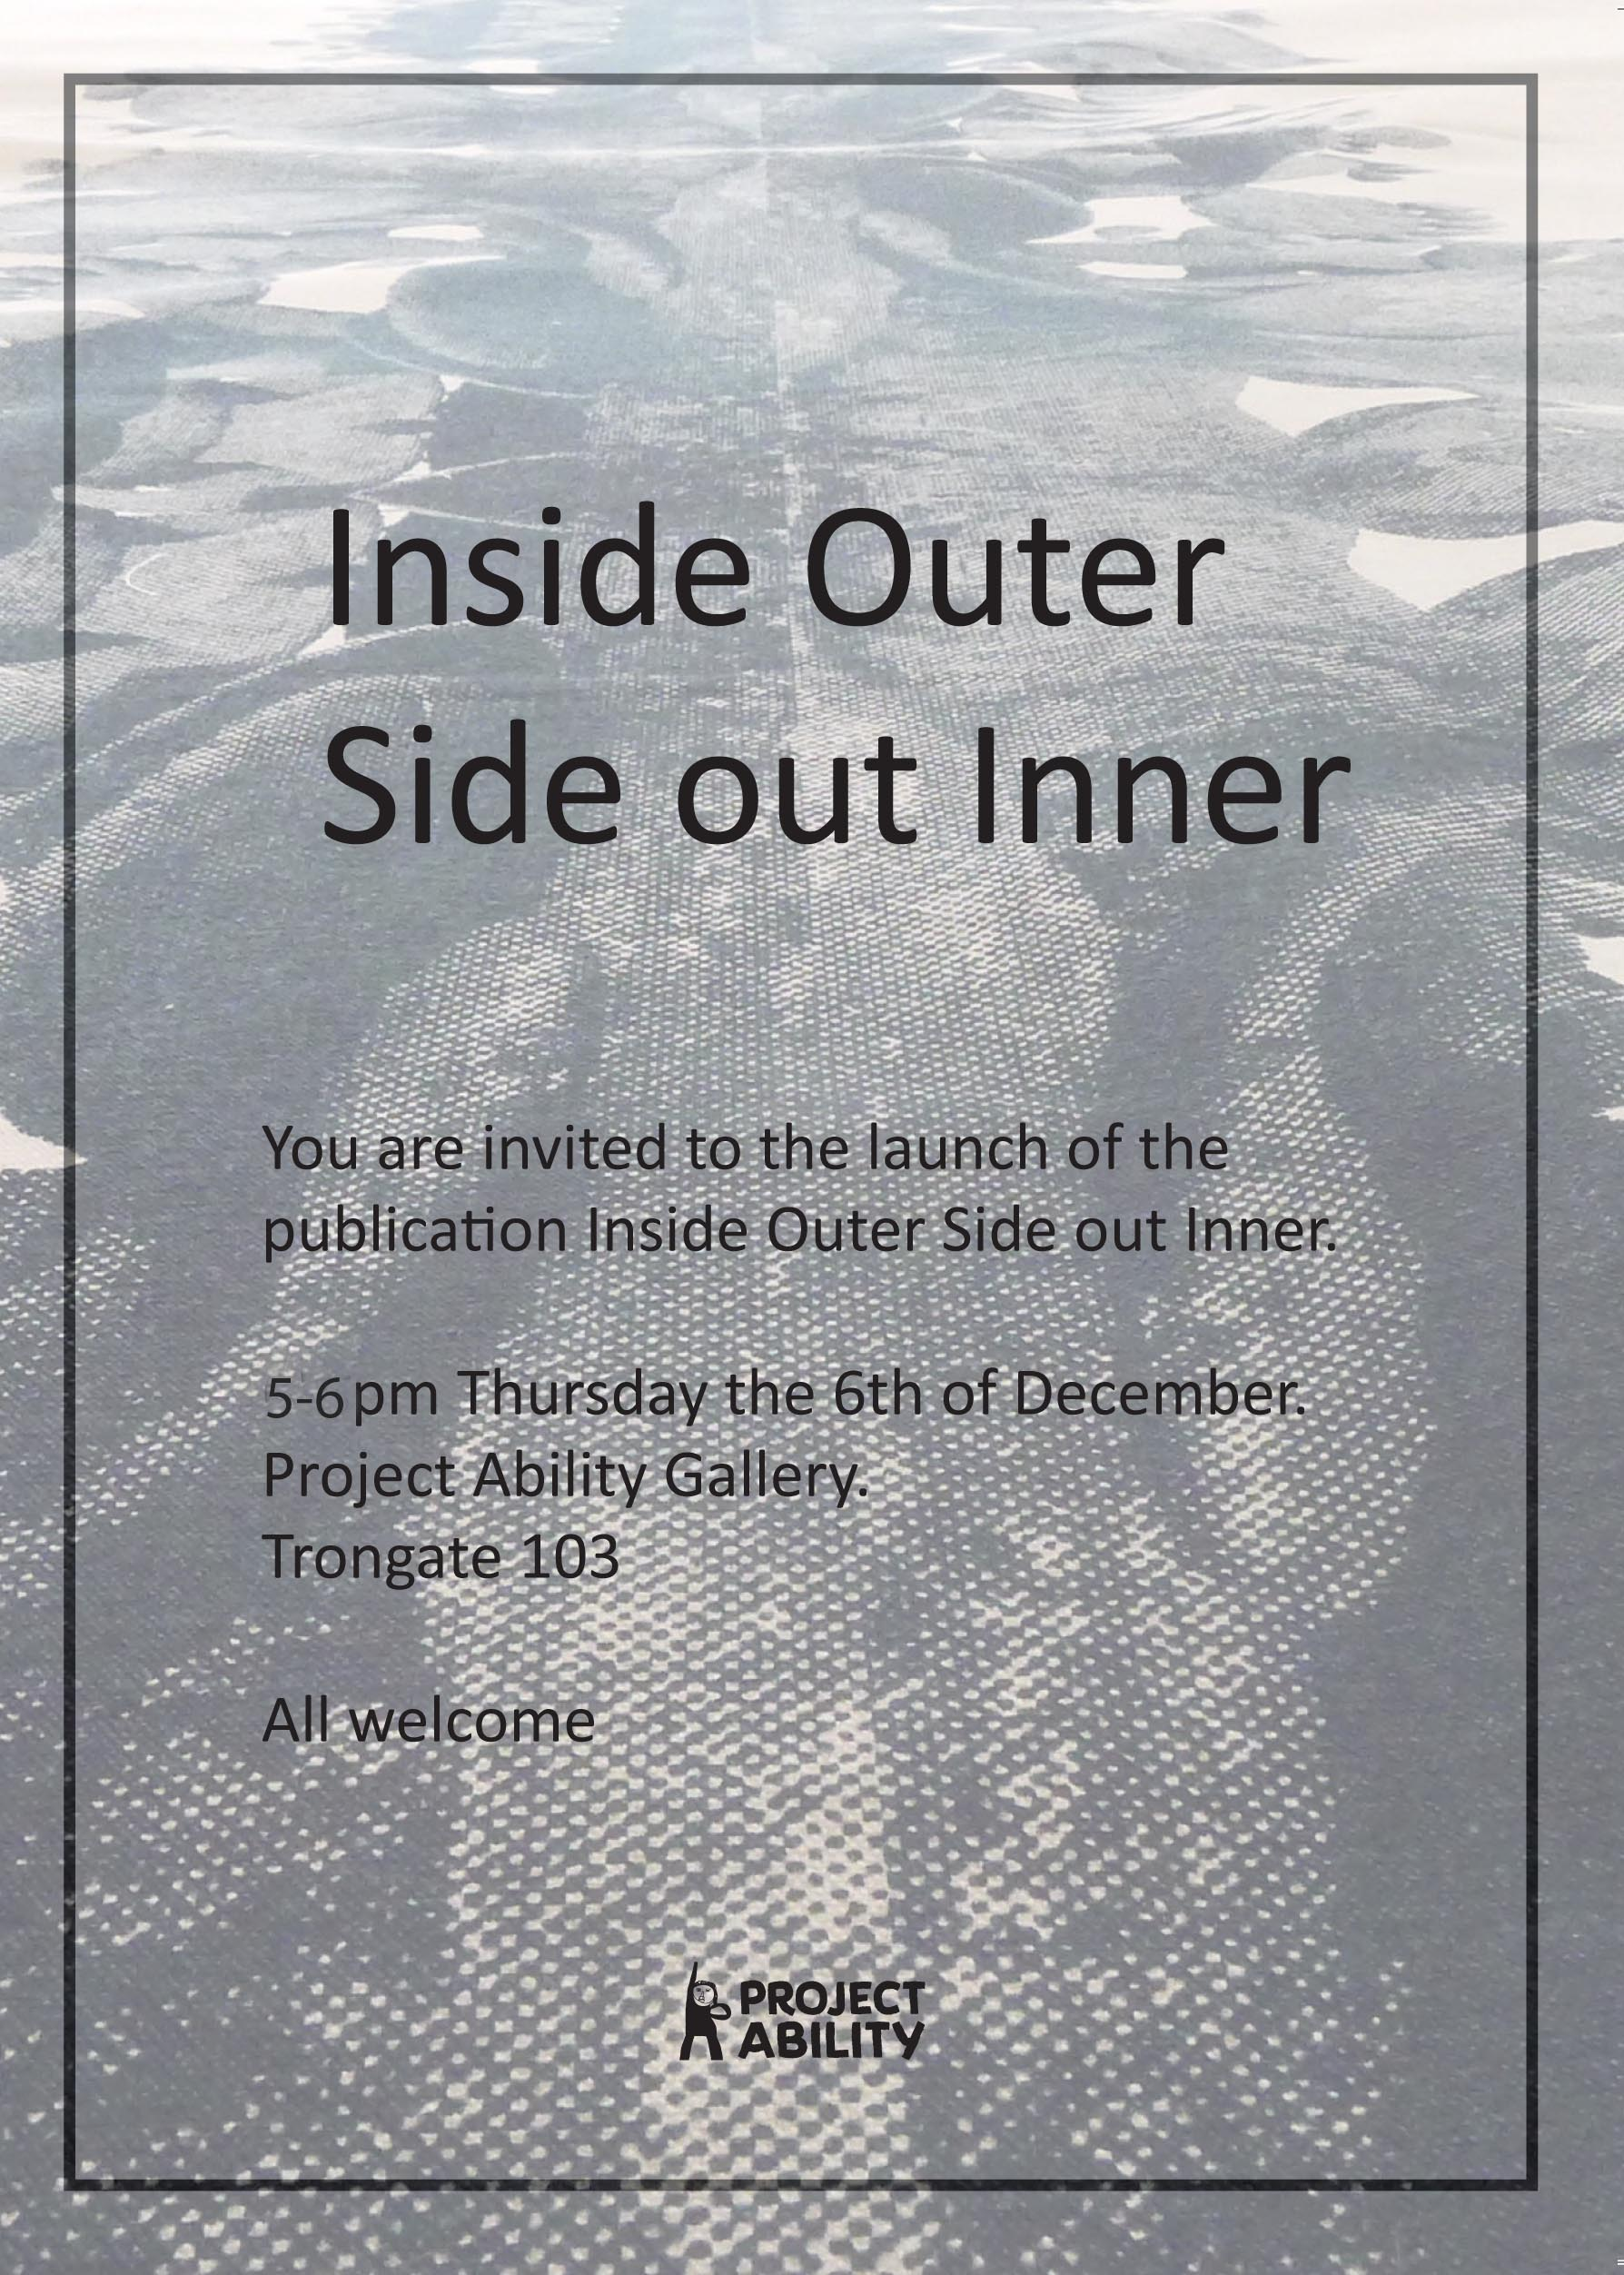 Invitation for the launch of Simon McAuley's publication